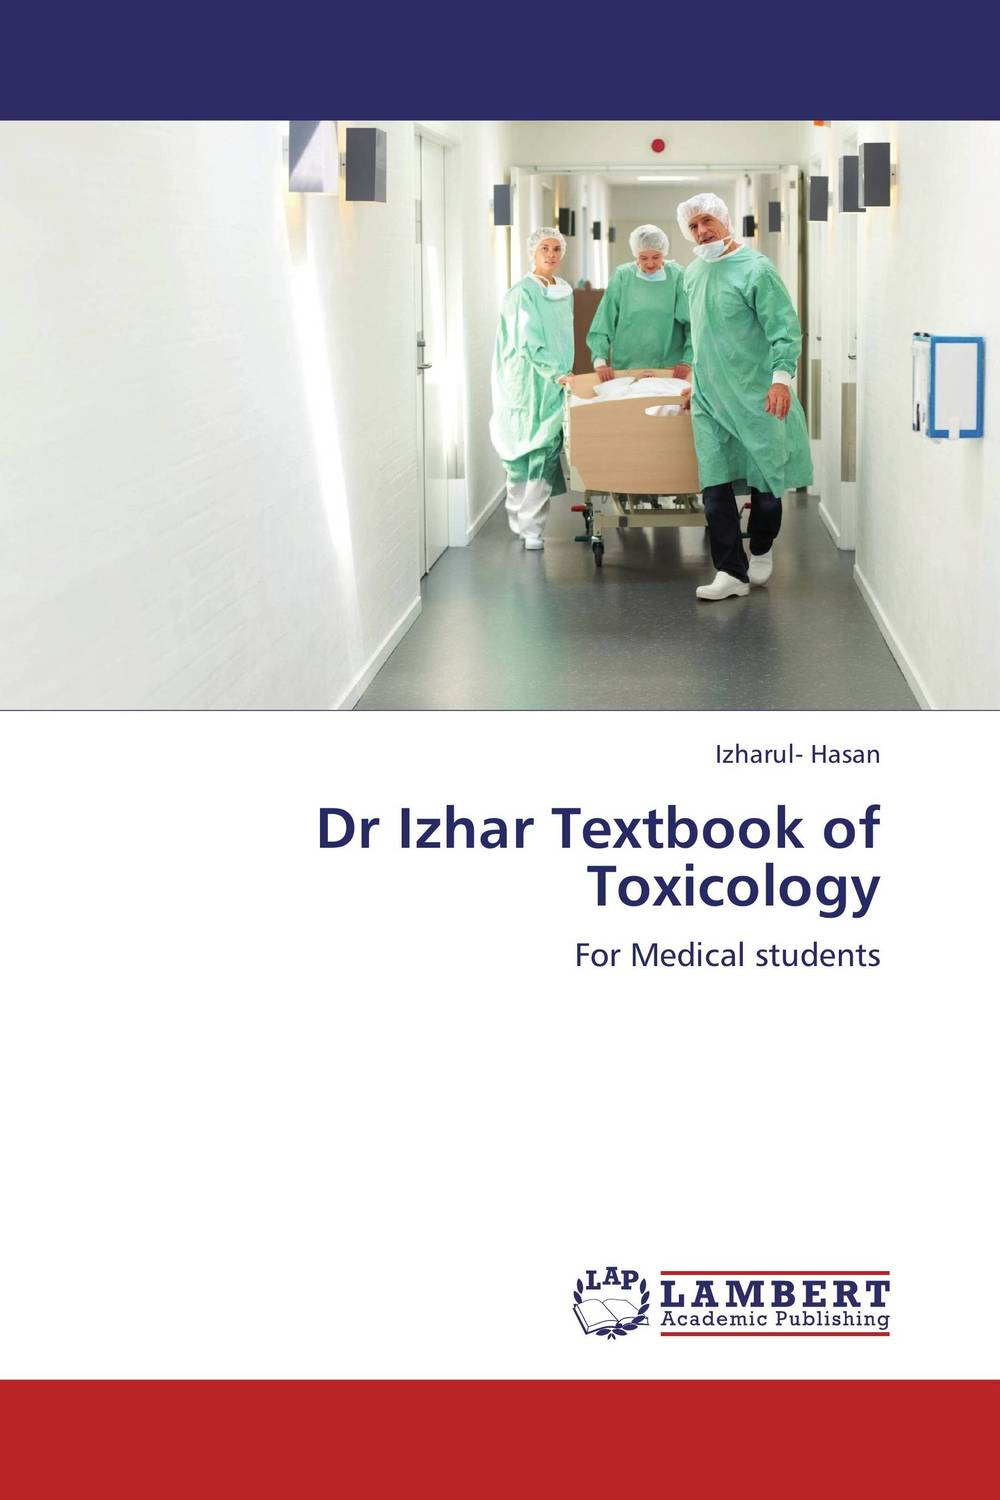 Dr Izhar Textbook of Toxicology